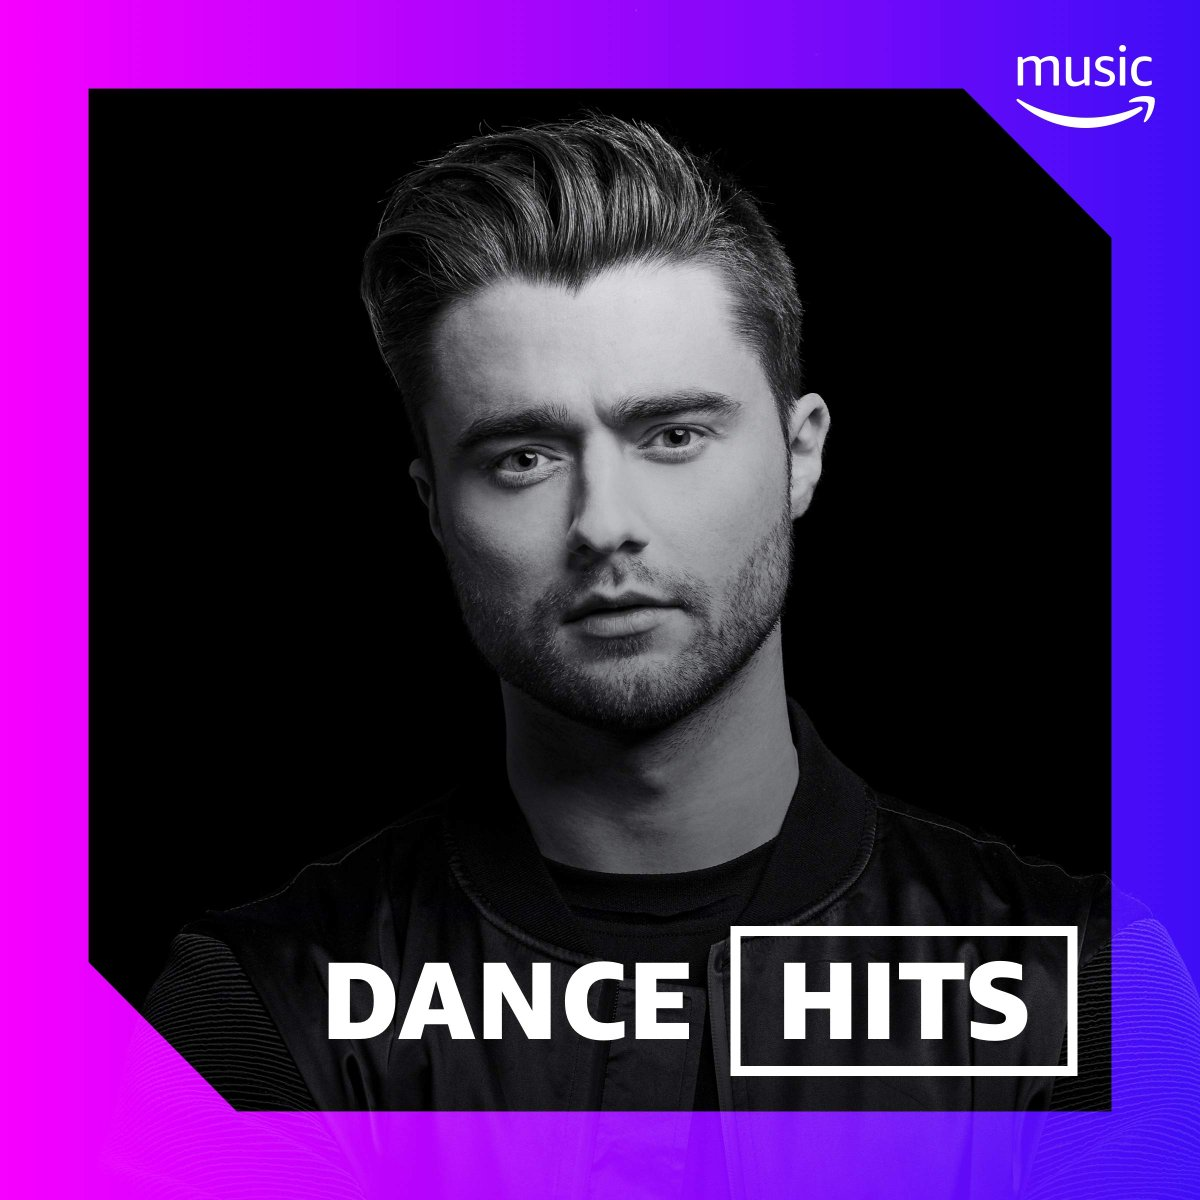 Shoutout to @AmazonMusicCAN for tossing me on the cover of their DANCE HITS playlist <3 <3